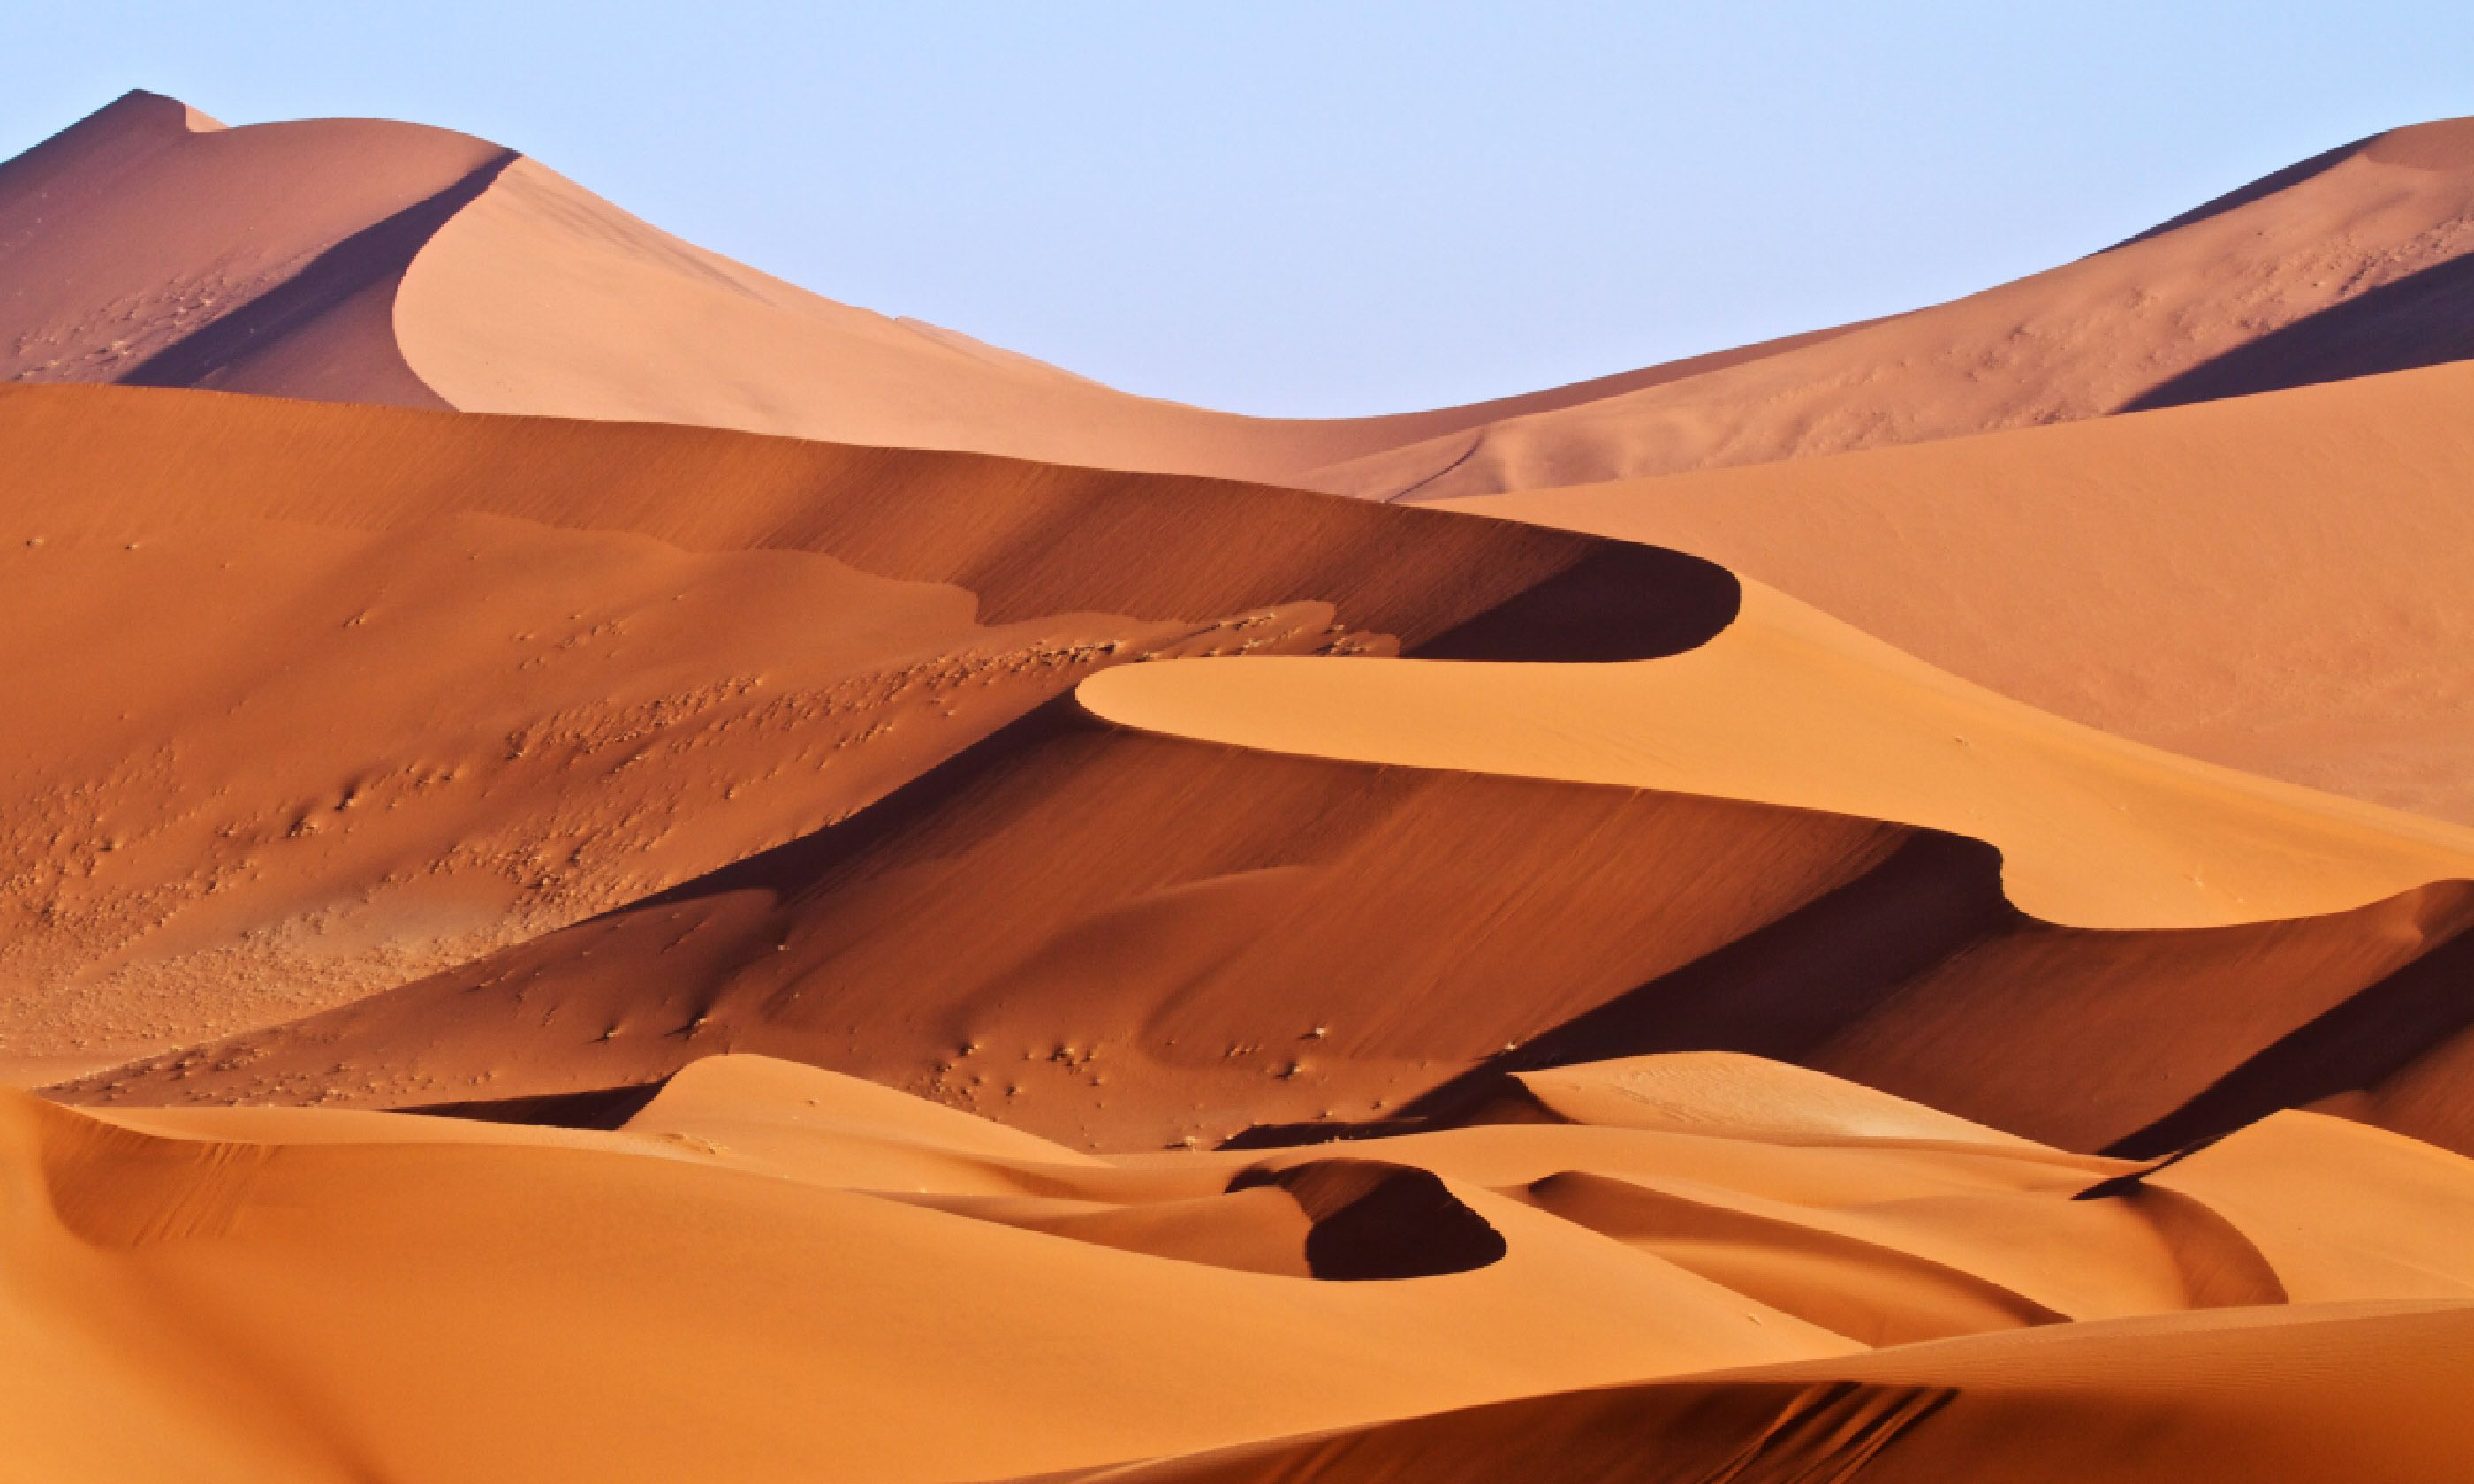 Red sand dunes, Namibia (Shutterstock)